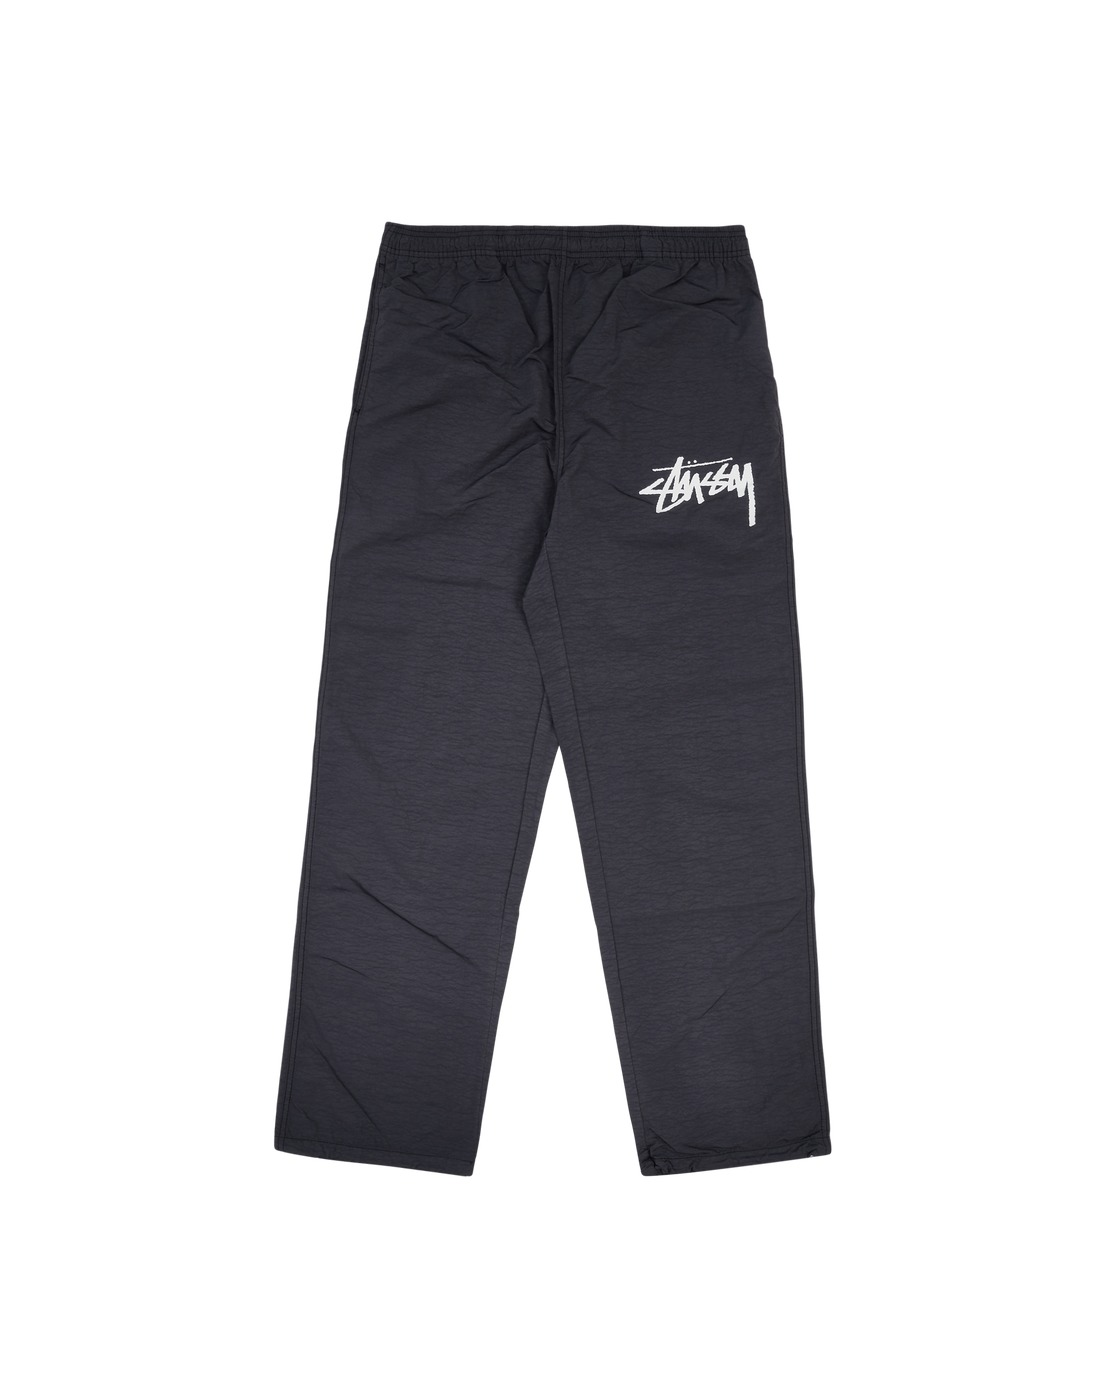 Nike Special Project Stussy Beach Pants Off Noir